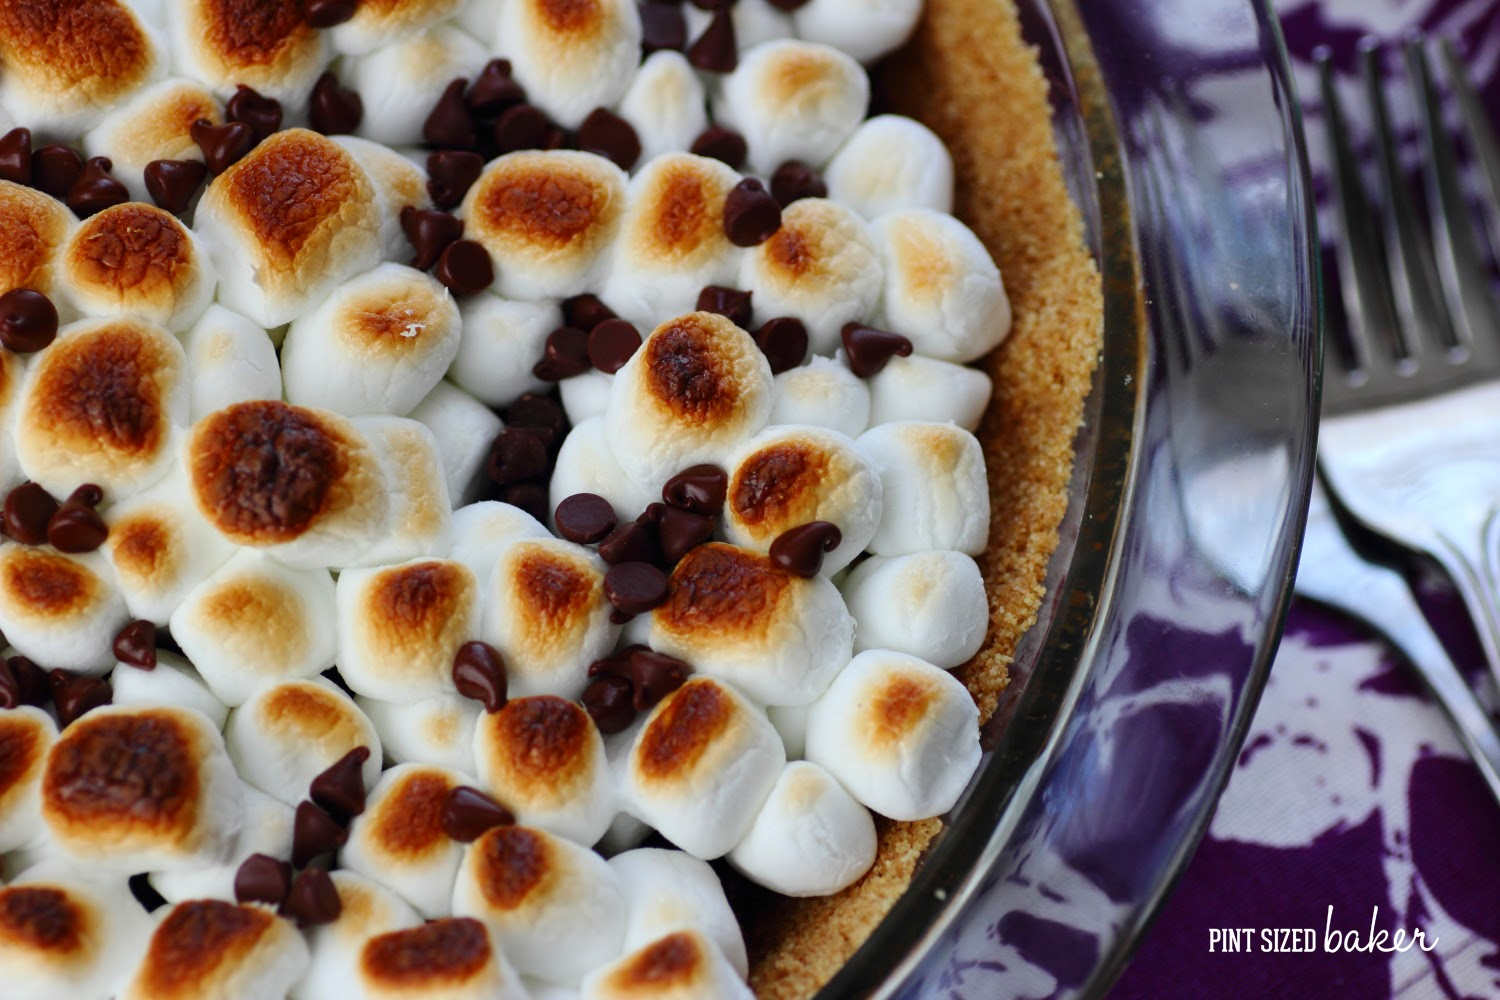 Love s'mores on a summer night? Then you're going to love this Mint Chocolate S'mores Pie with just a few ingredients, it's sure to please the family.